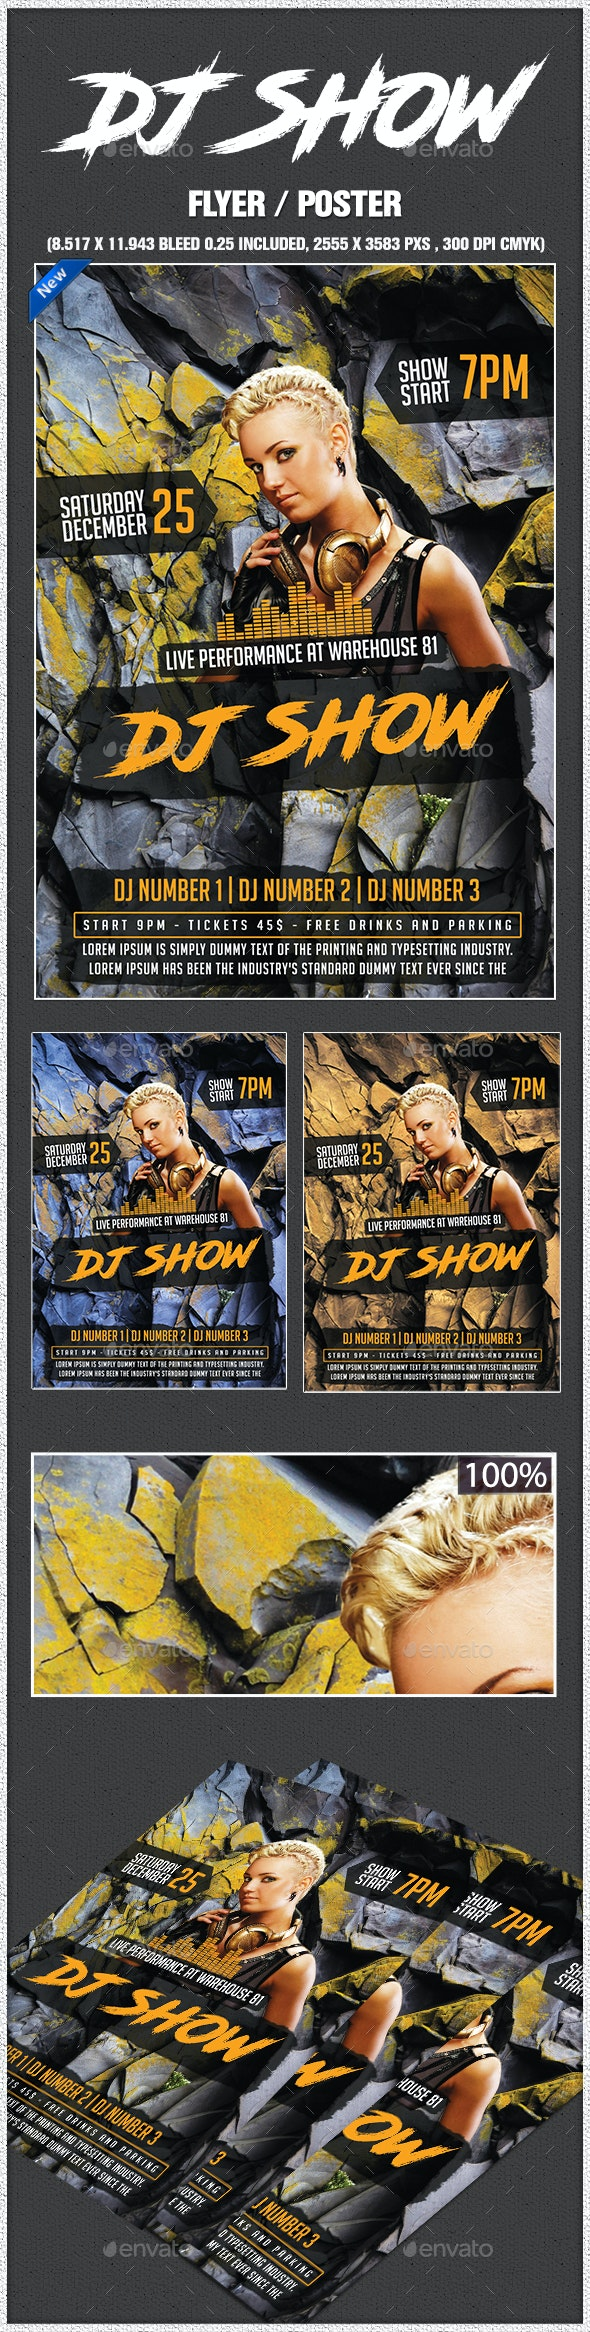 Dj Show Poster - Clubs & Parties Events